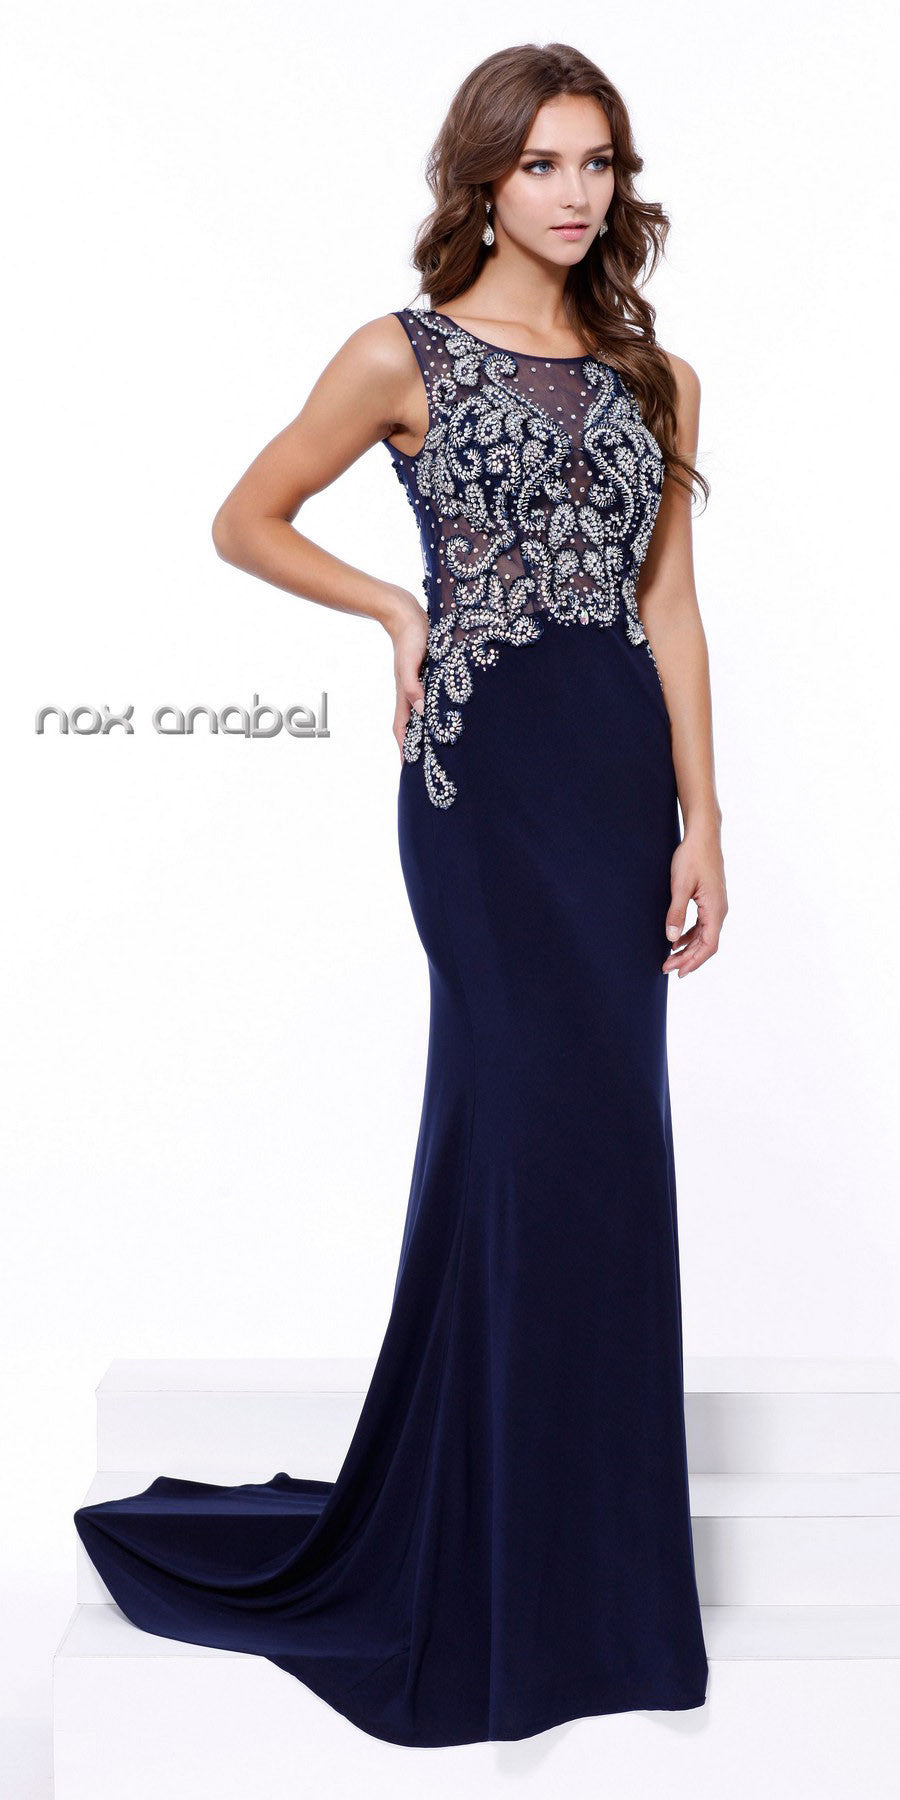 Embellished Top Fit and Flare Evening Gown with Train Navy Blue